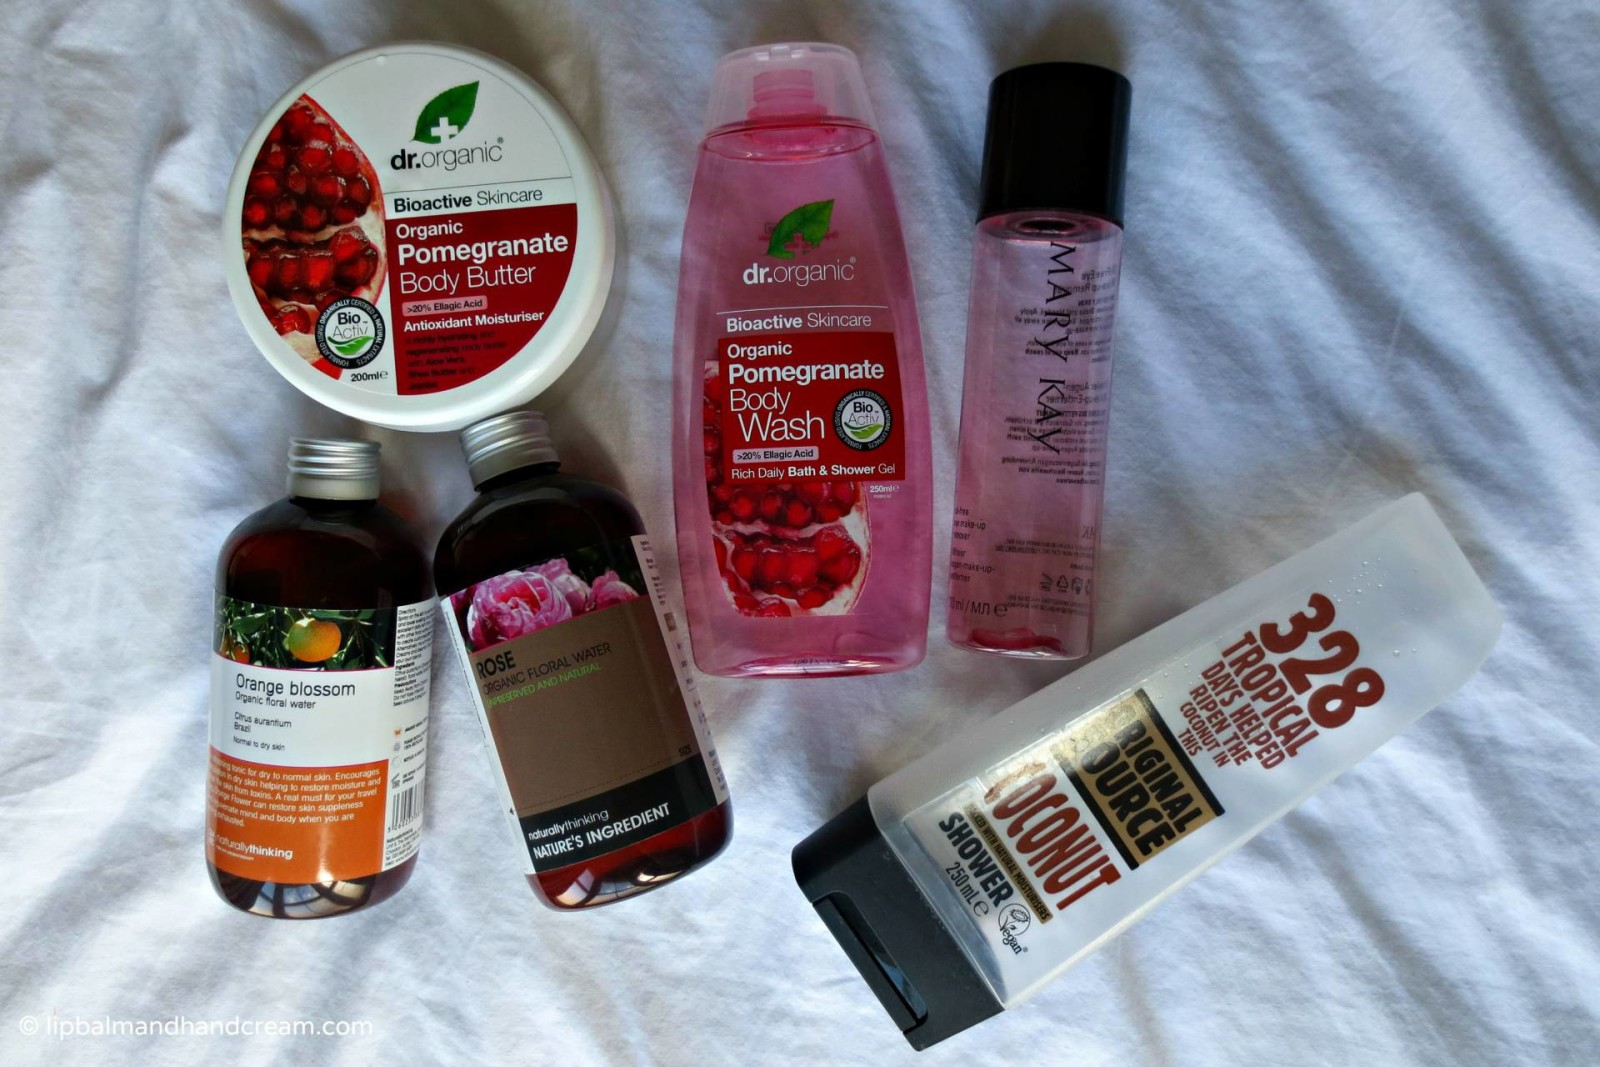 July's empties from Dr Organic, Mary Kay, Original Source and Naturally Thinking